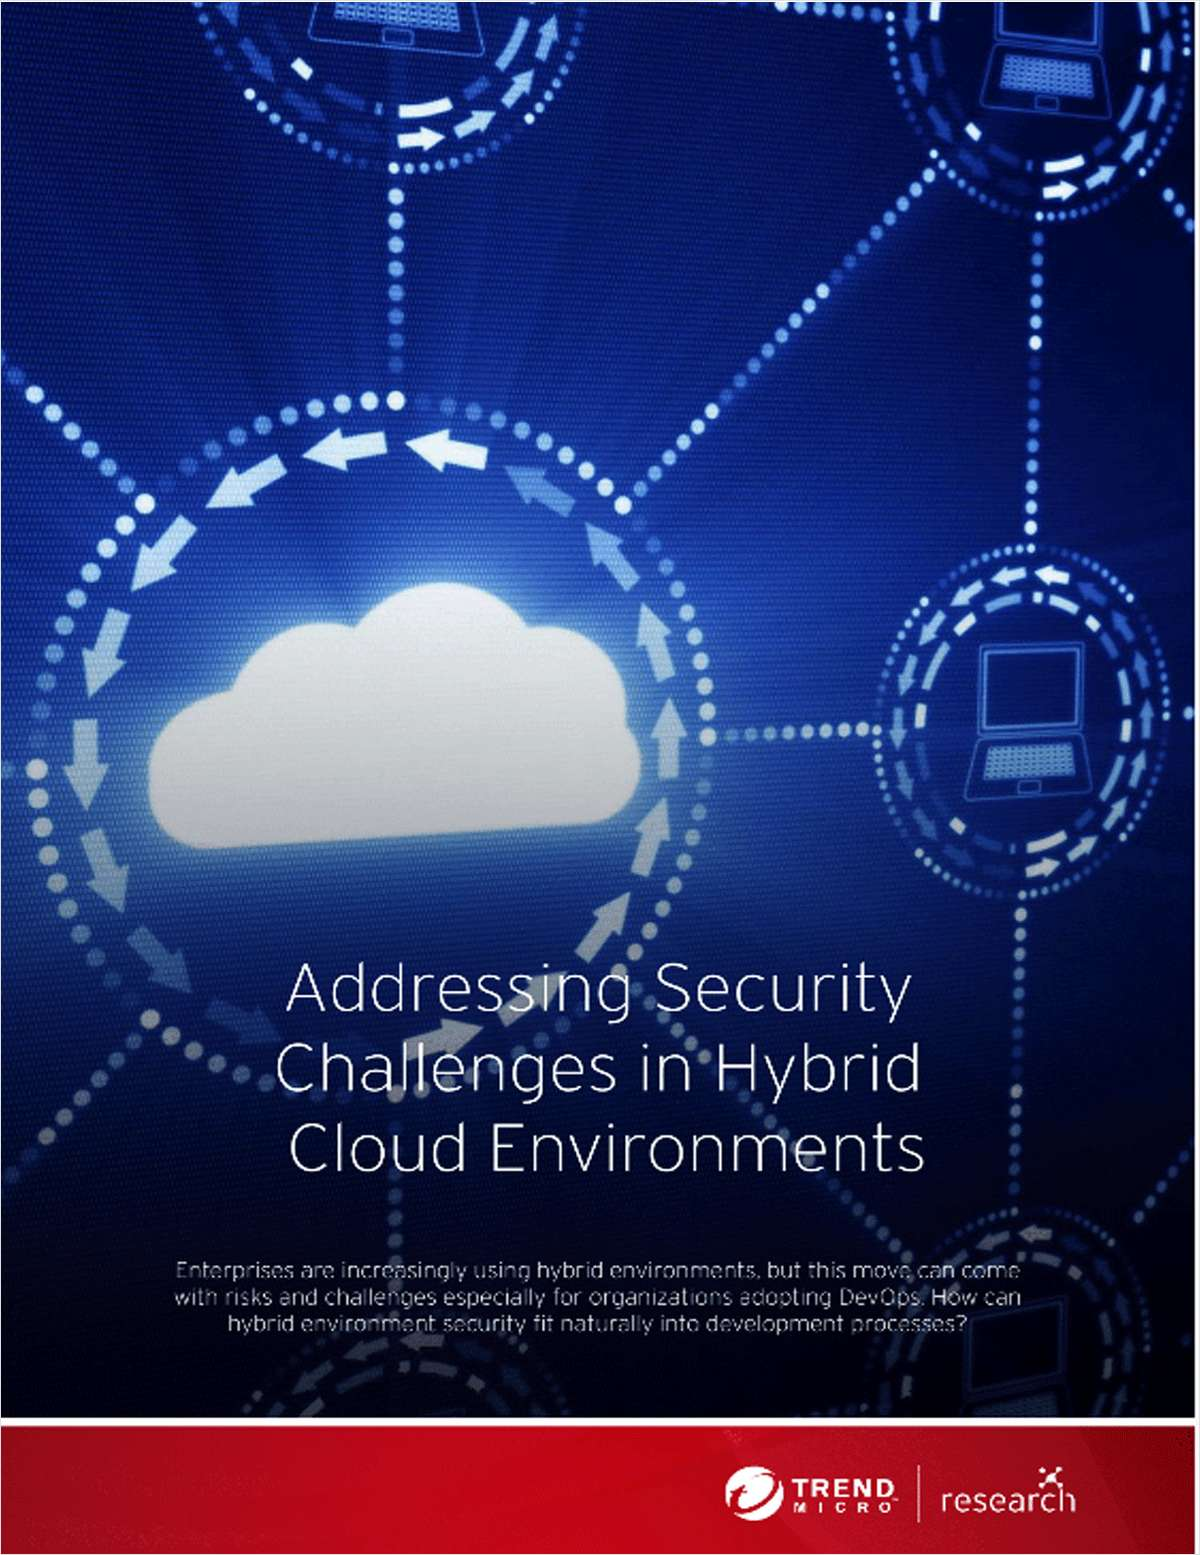 Addressing Challenges in Hybrid Cloud Security